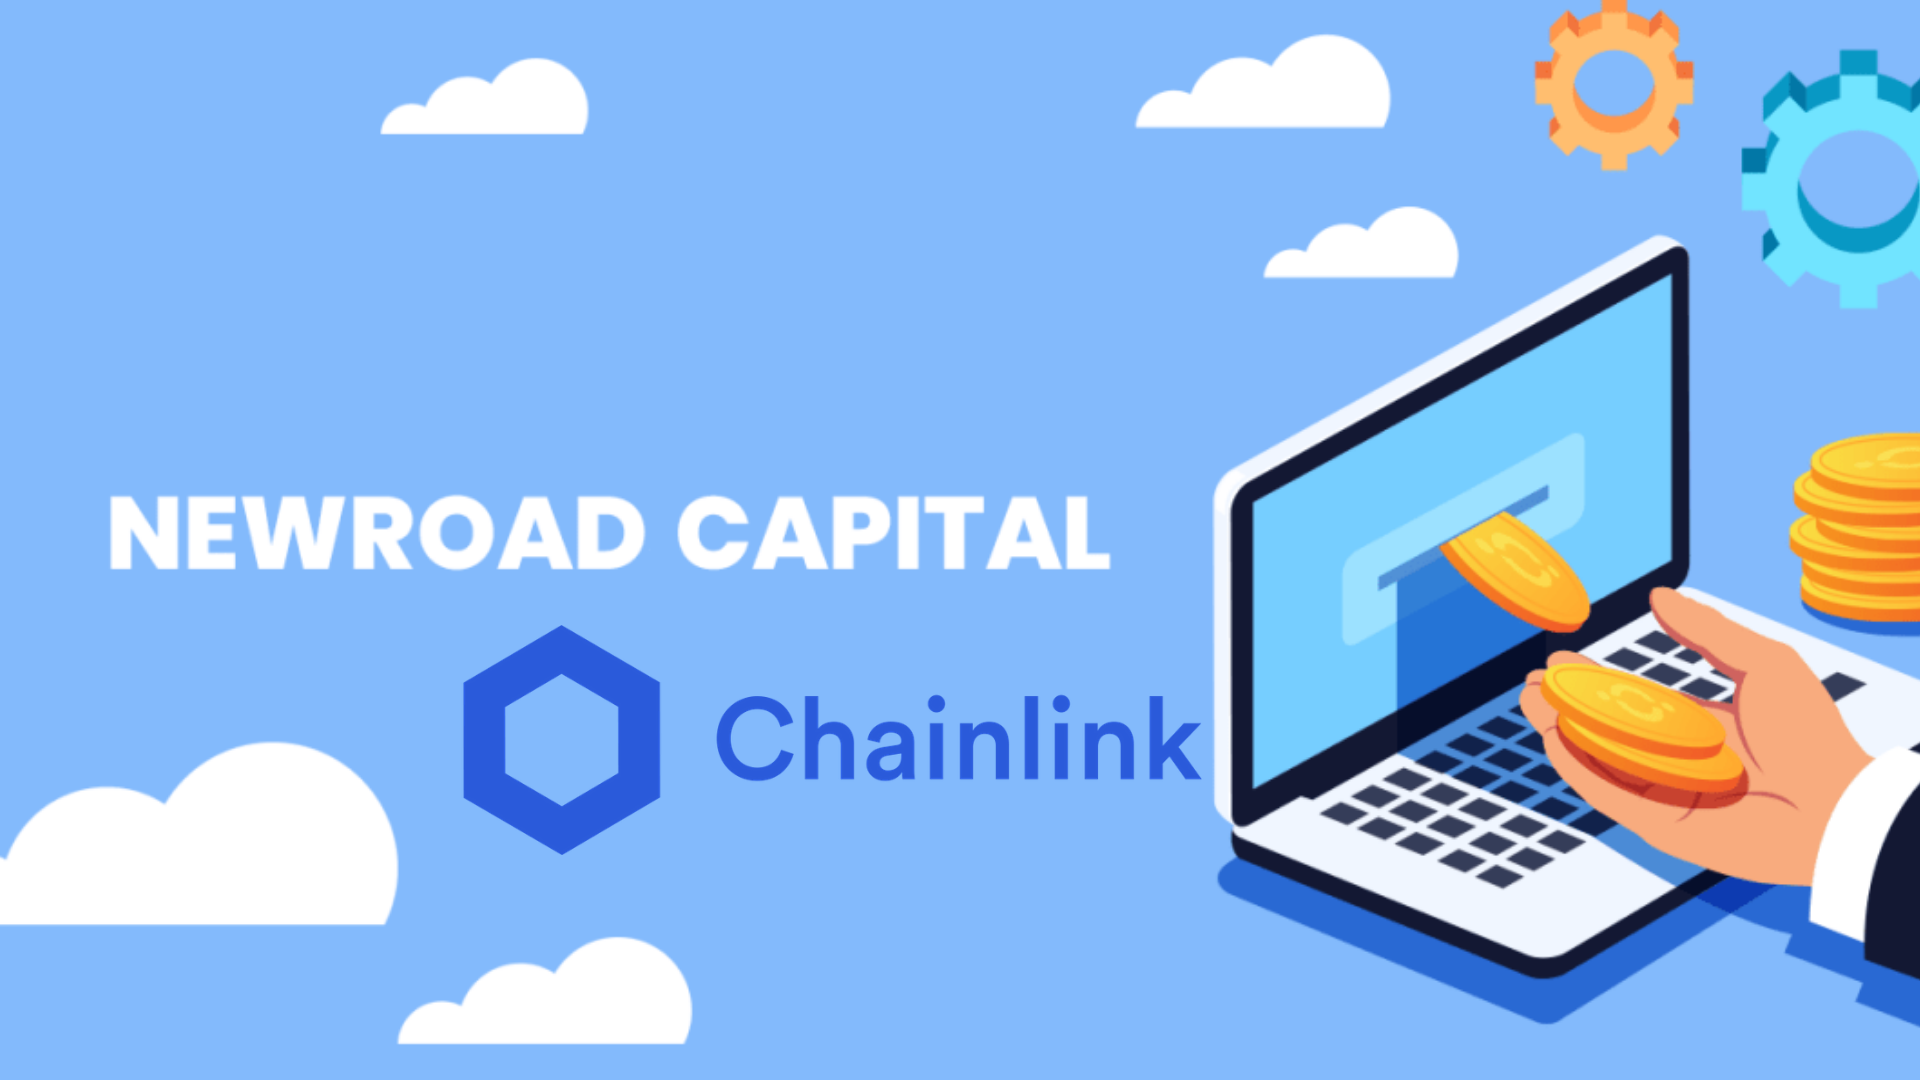 Chainlink Welcomes the Integration of Newroad Capital as a